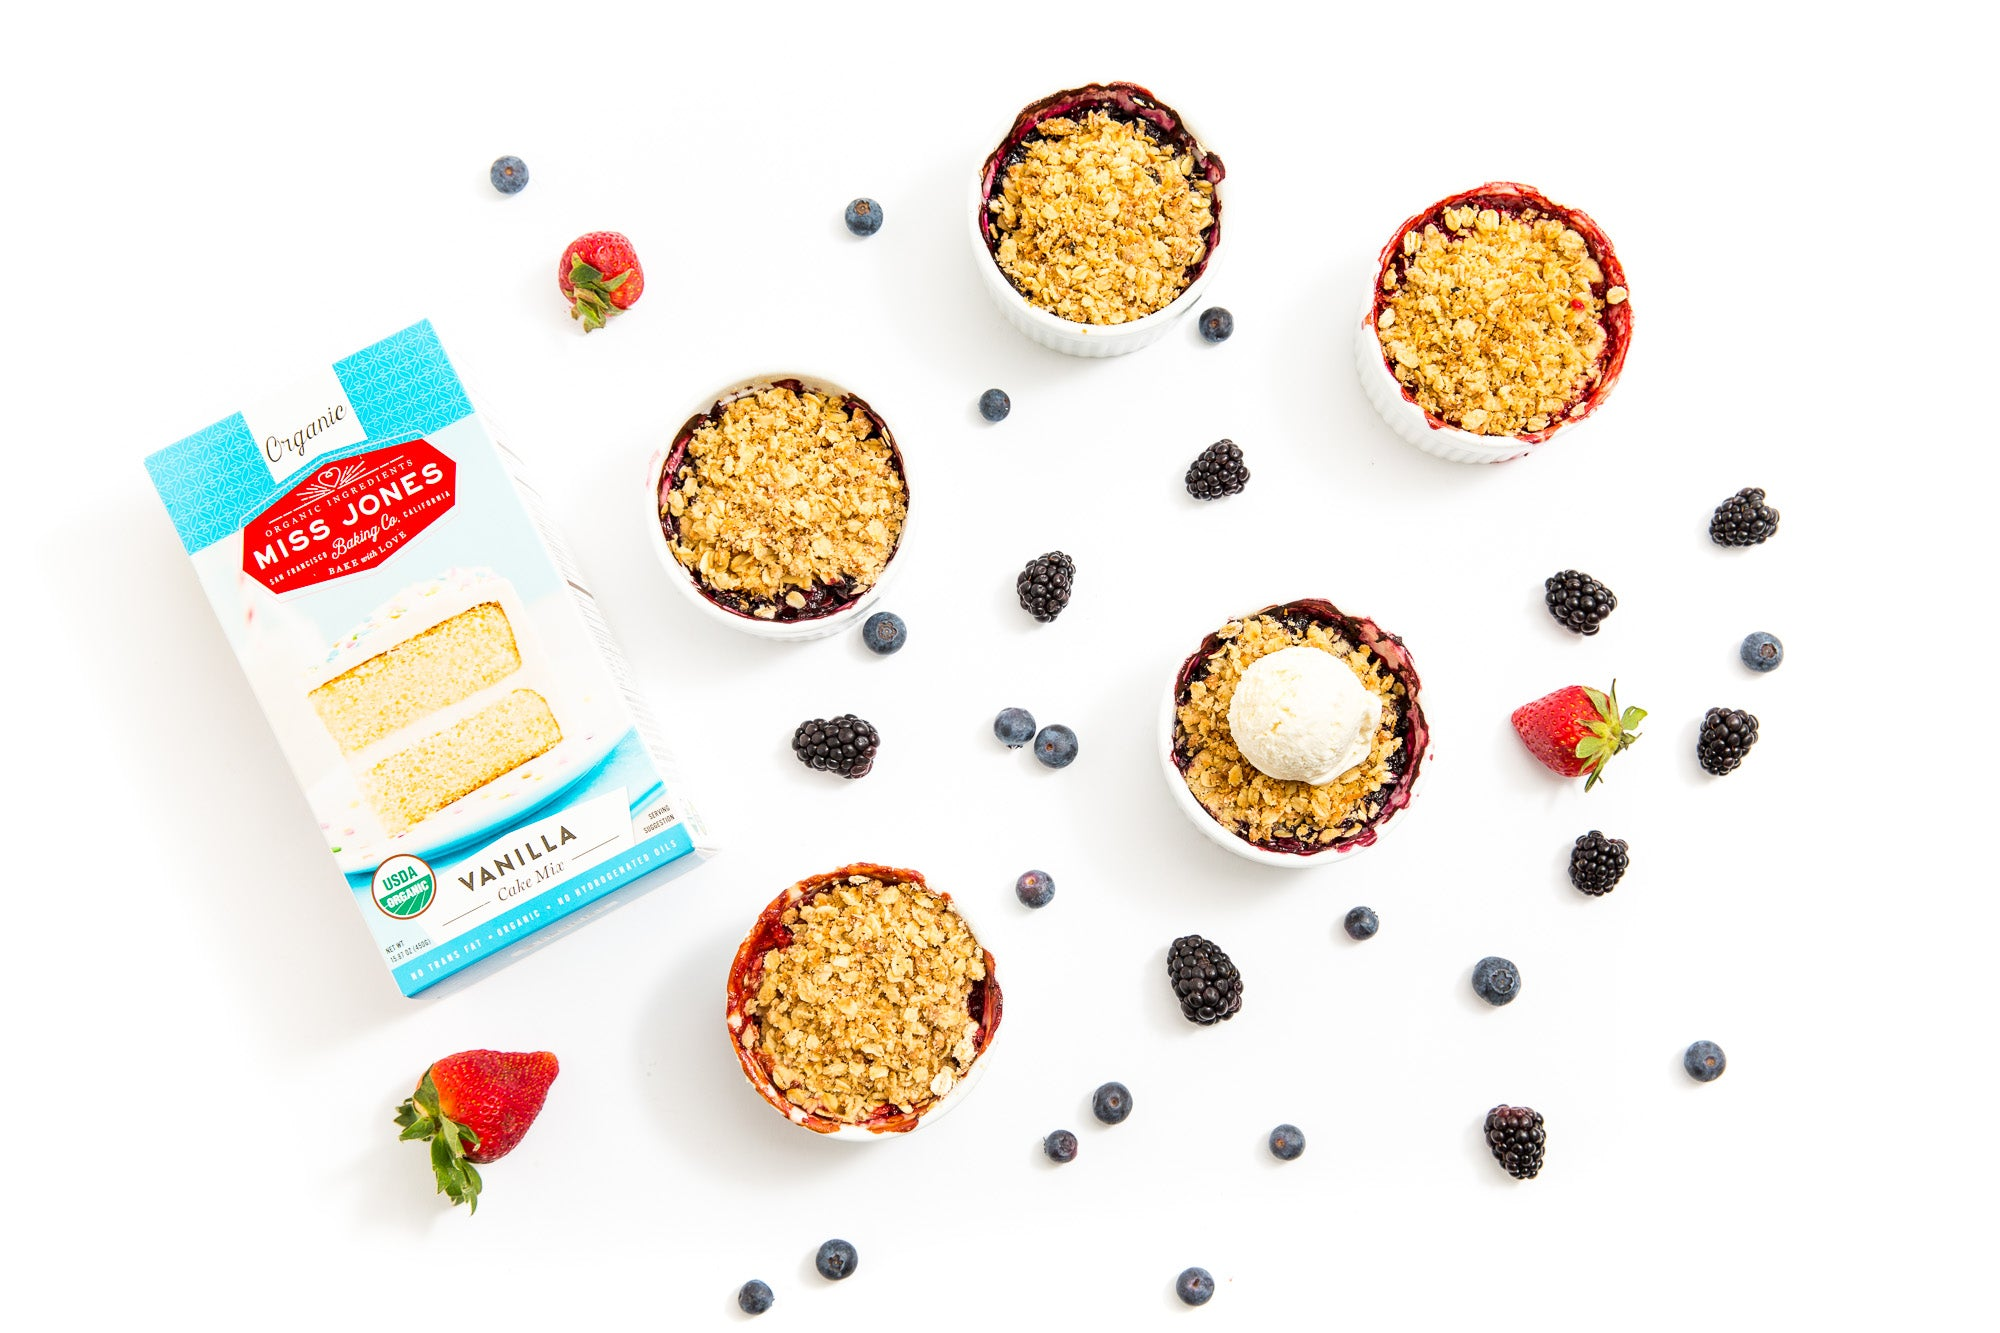 Image from above of four Miss Jones Baking Co Mini Berry Crumbles next to a box of Miss Jones Vanilla Cake Mix surrounded by blackberries, blueberries, and a strawberry